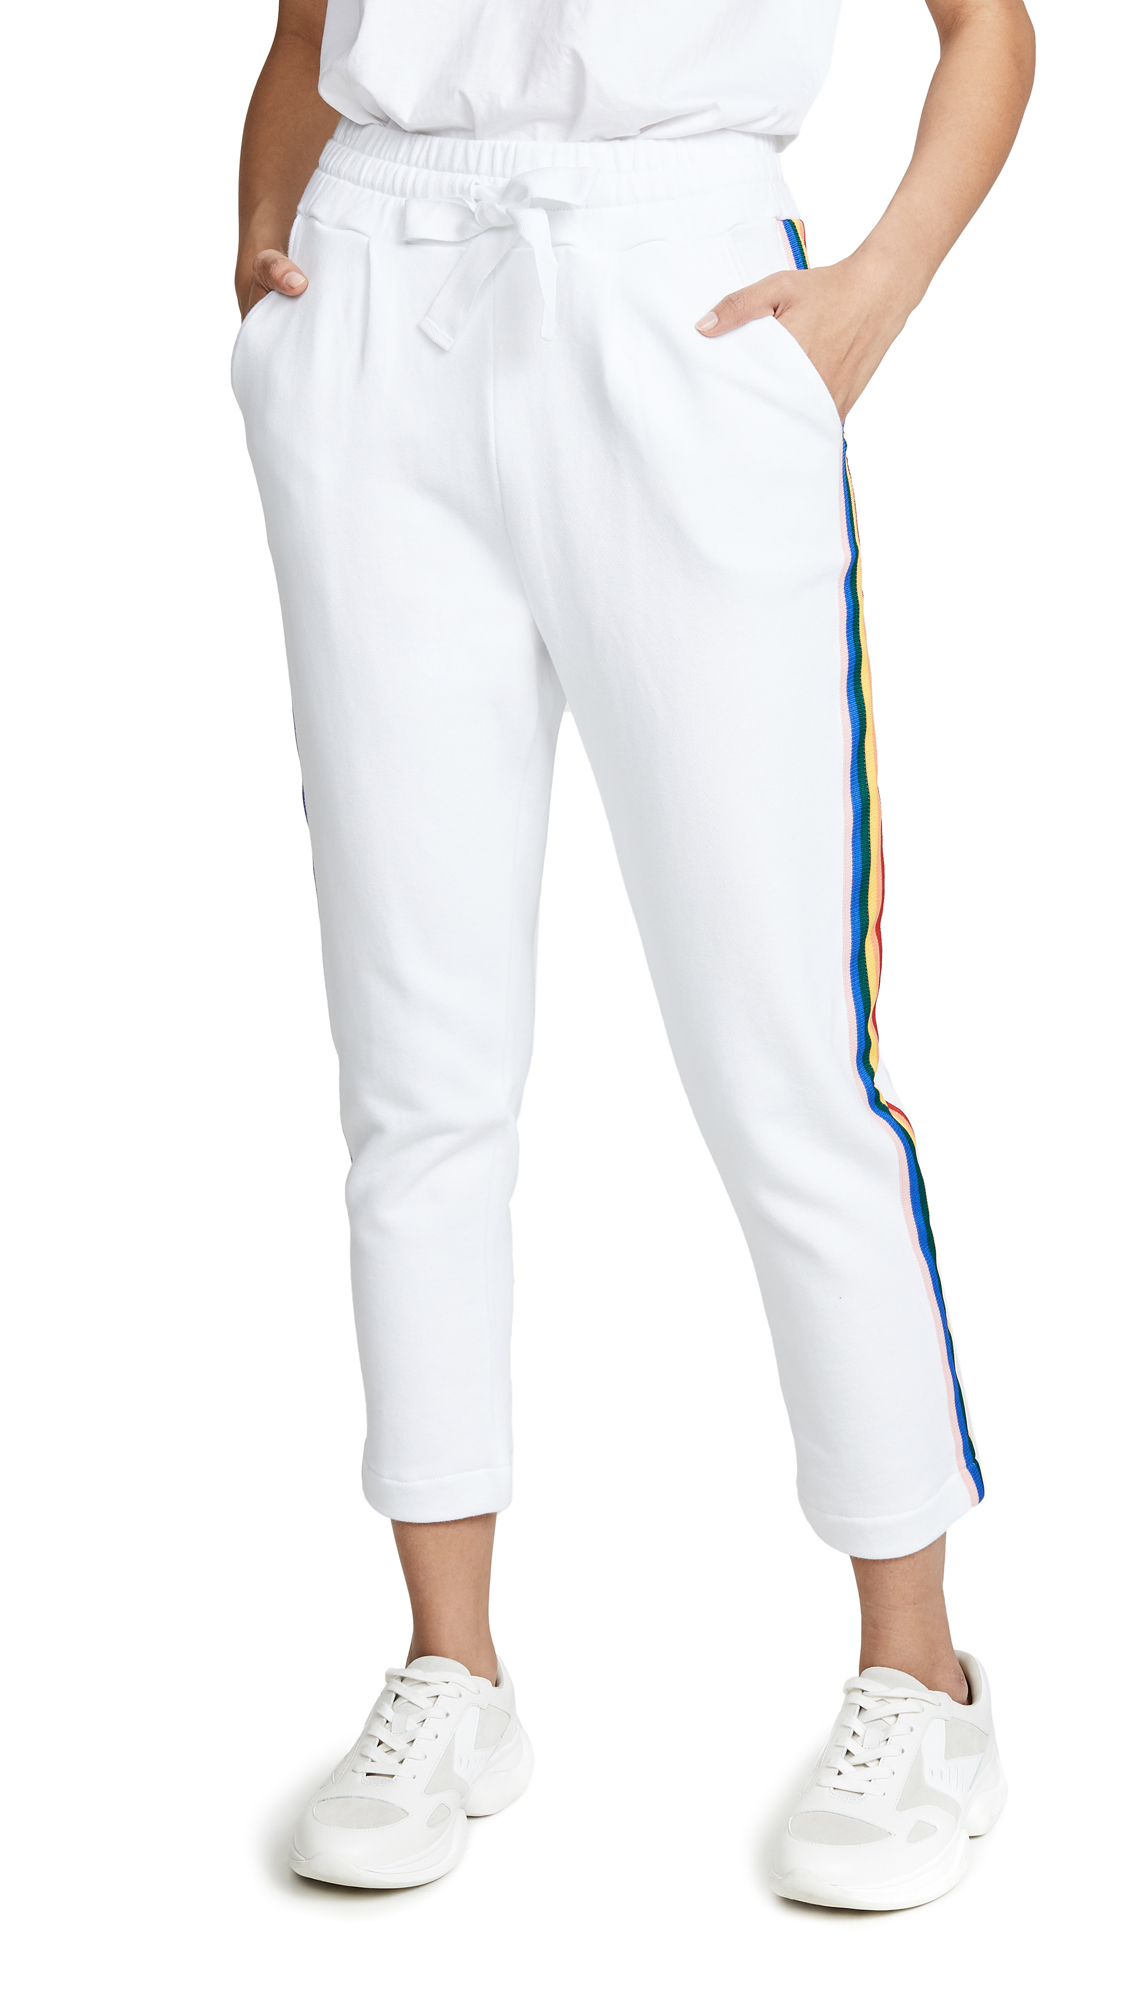 Chinti and Parker Dreamer Sweatpants - White